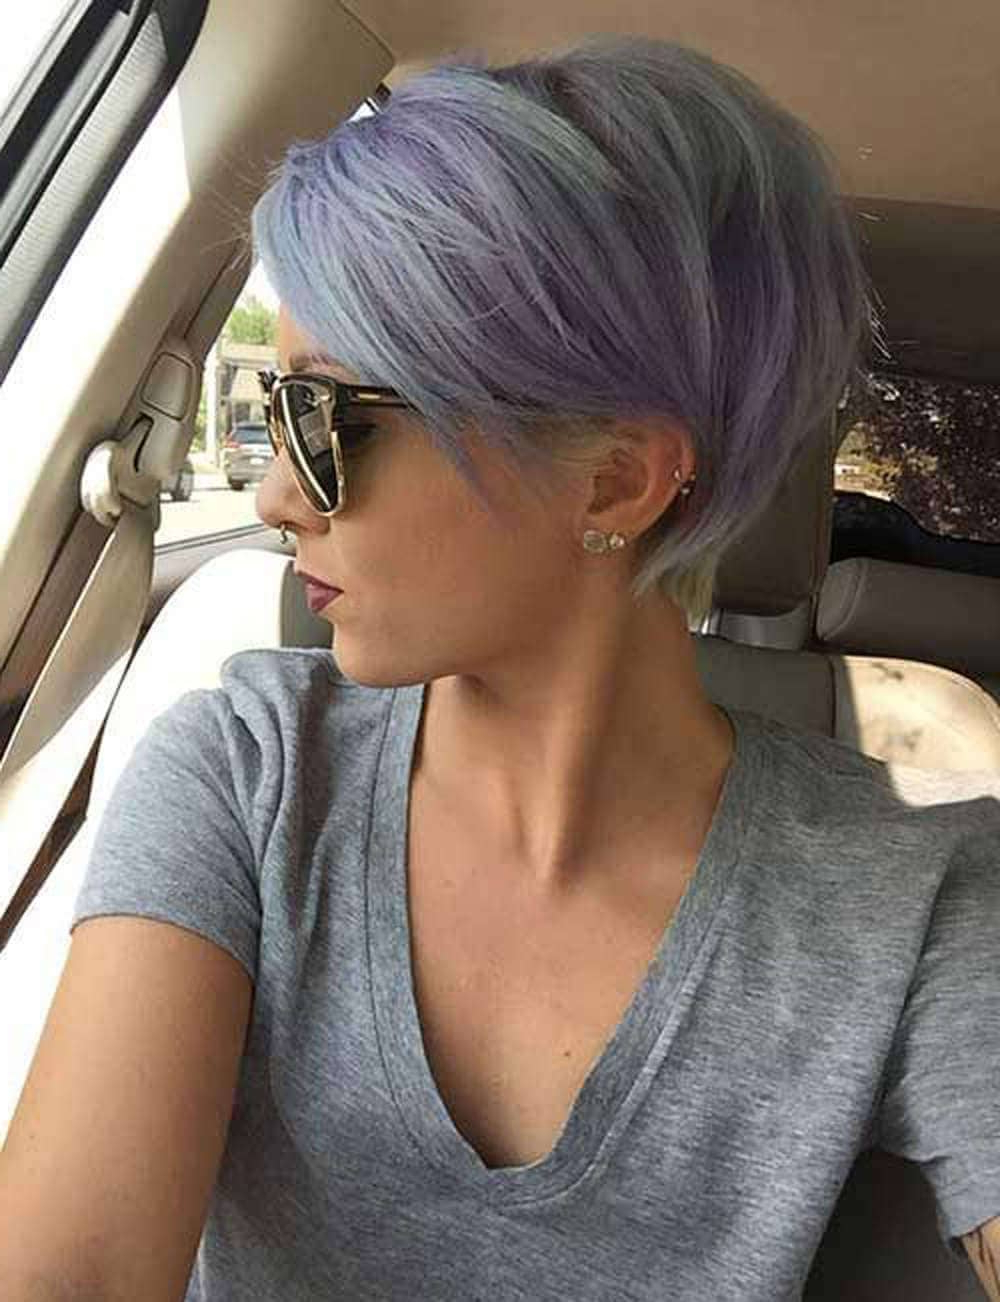 50 Pixie Haircuts You'll See Trending In 2018 With Highlighted Pixie Bob Hairstyles With Long Bangs (View 11 of 20)